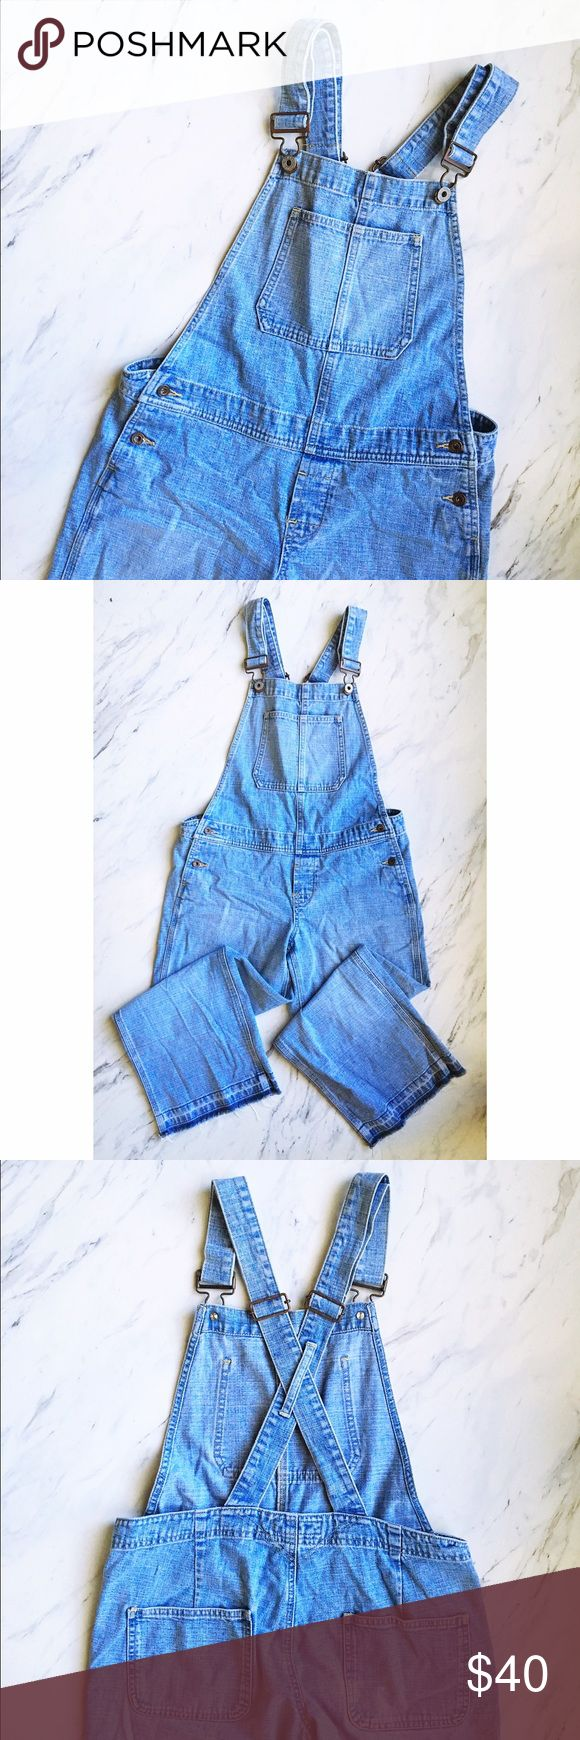 Old Navy Raw Hem Cropped Overalls Really great overalls with raw-dyed hem! Very on trend, super casual. Cross straps on the back. Great for fall!! Old Navy Jeans Overalls